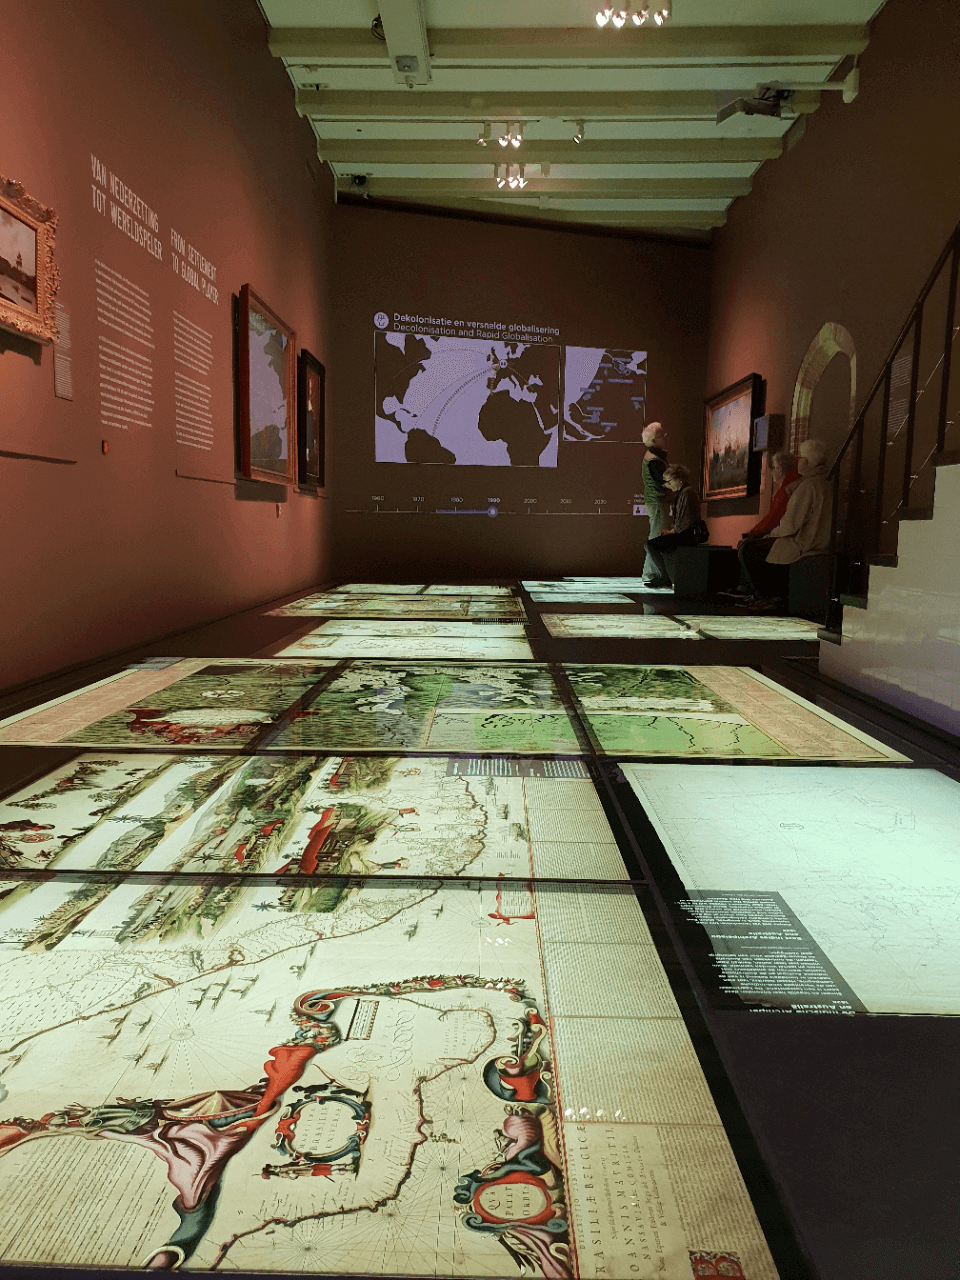 A room filled with historical maps in the Amsterdam Museum. Some of the maps show New York and the borough of Staten Island when it was settled by the Dutch